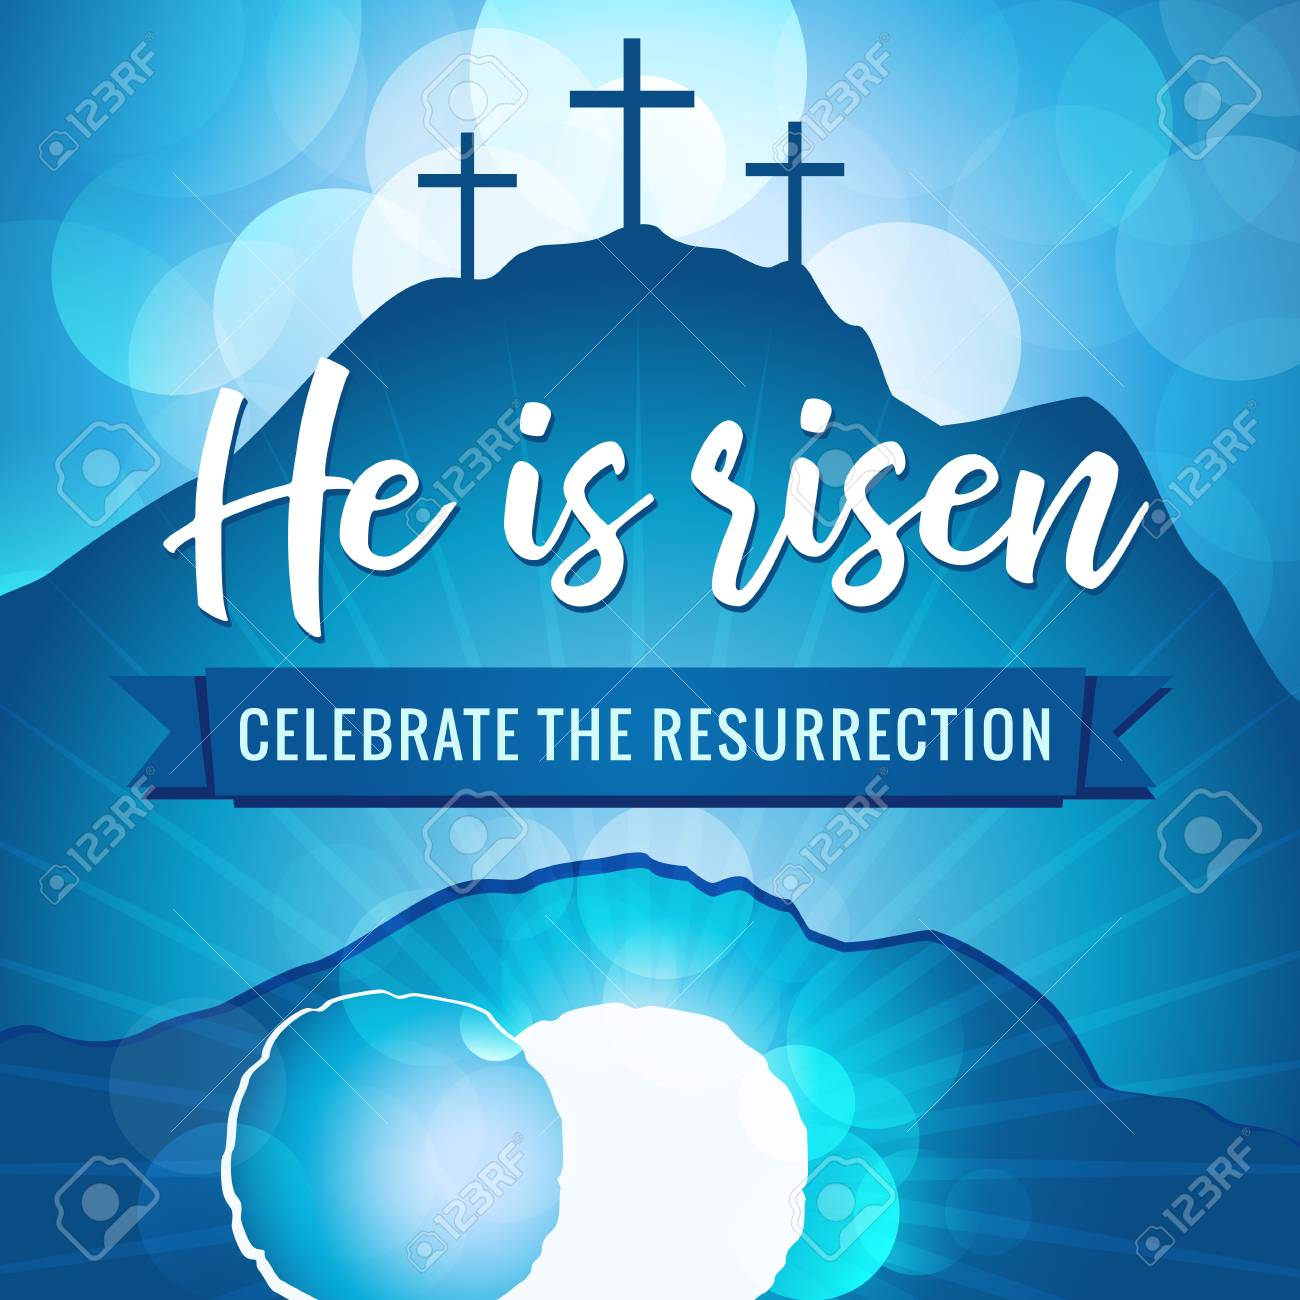 He is risen holy week. Easter christian motive, vector invitation to an Easter Sunday service with text stone of Calvary. - 95331754